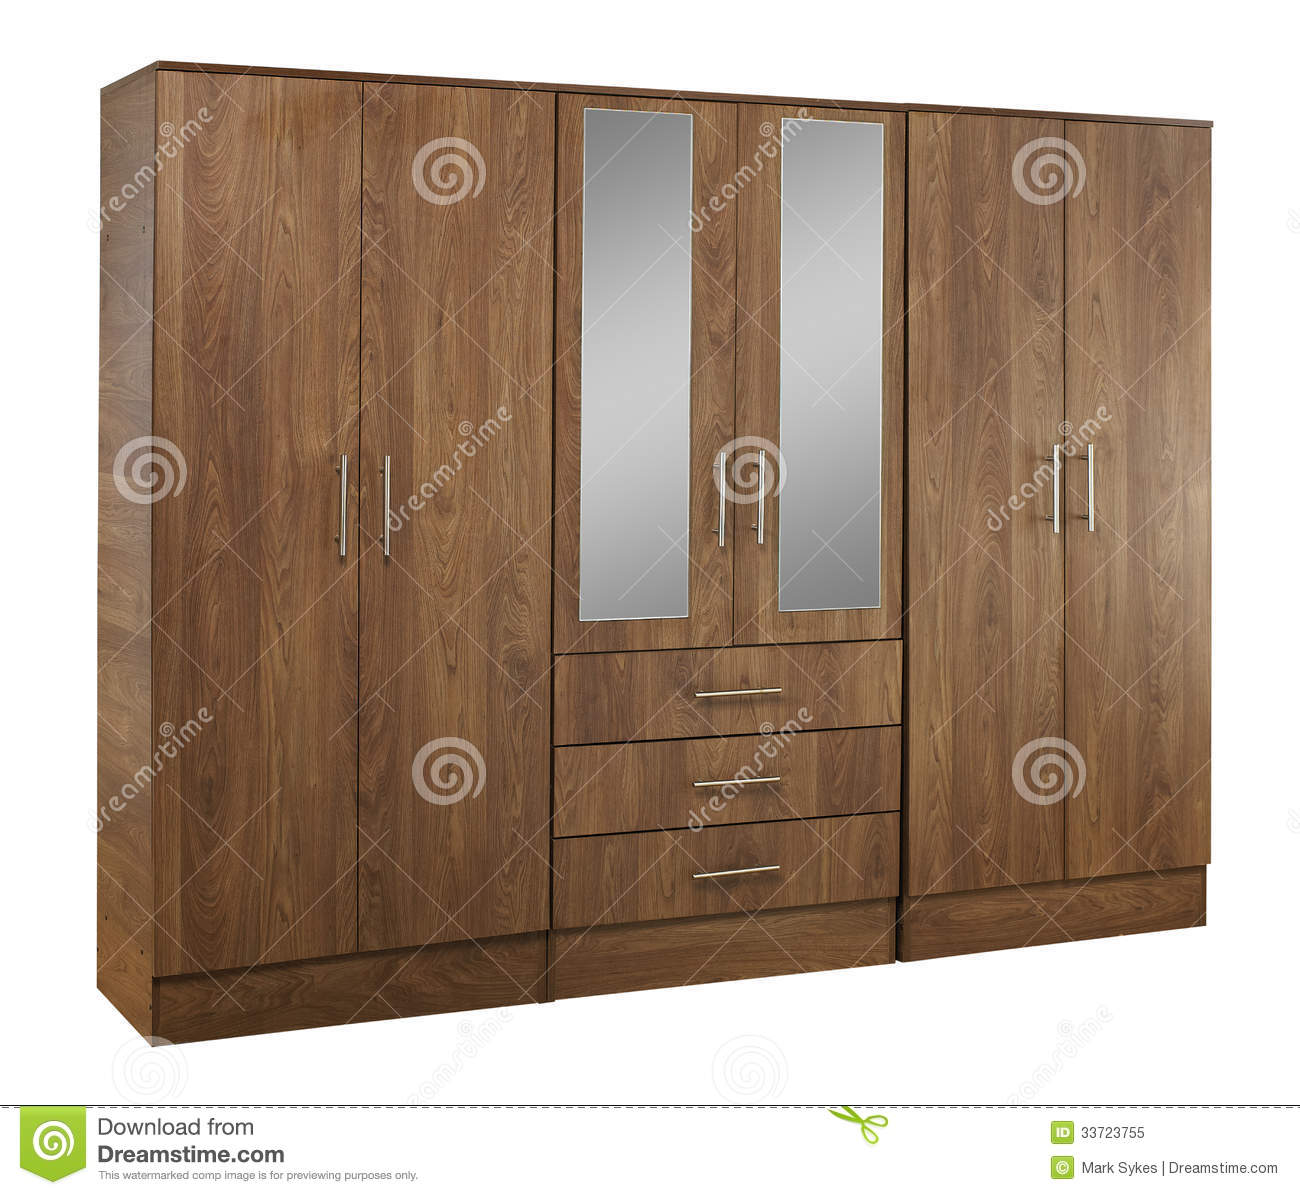 Amazing photo of Brown wood bedroom wardrobe with mirror isolated on white background. with #84A625 color and 1300x1195 pixels